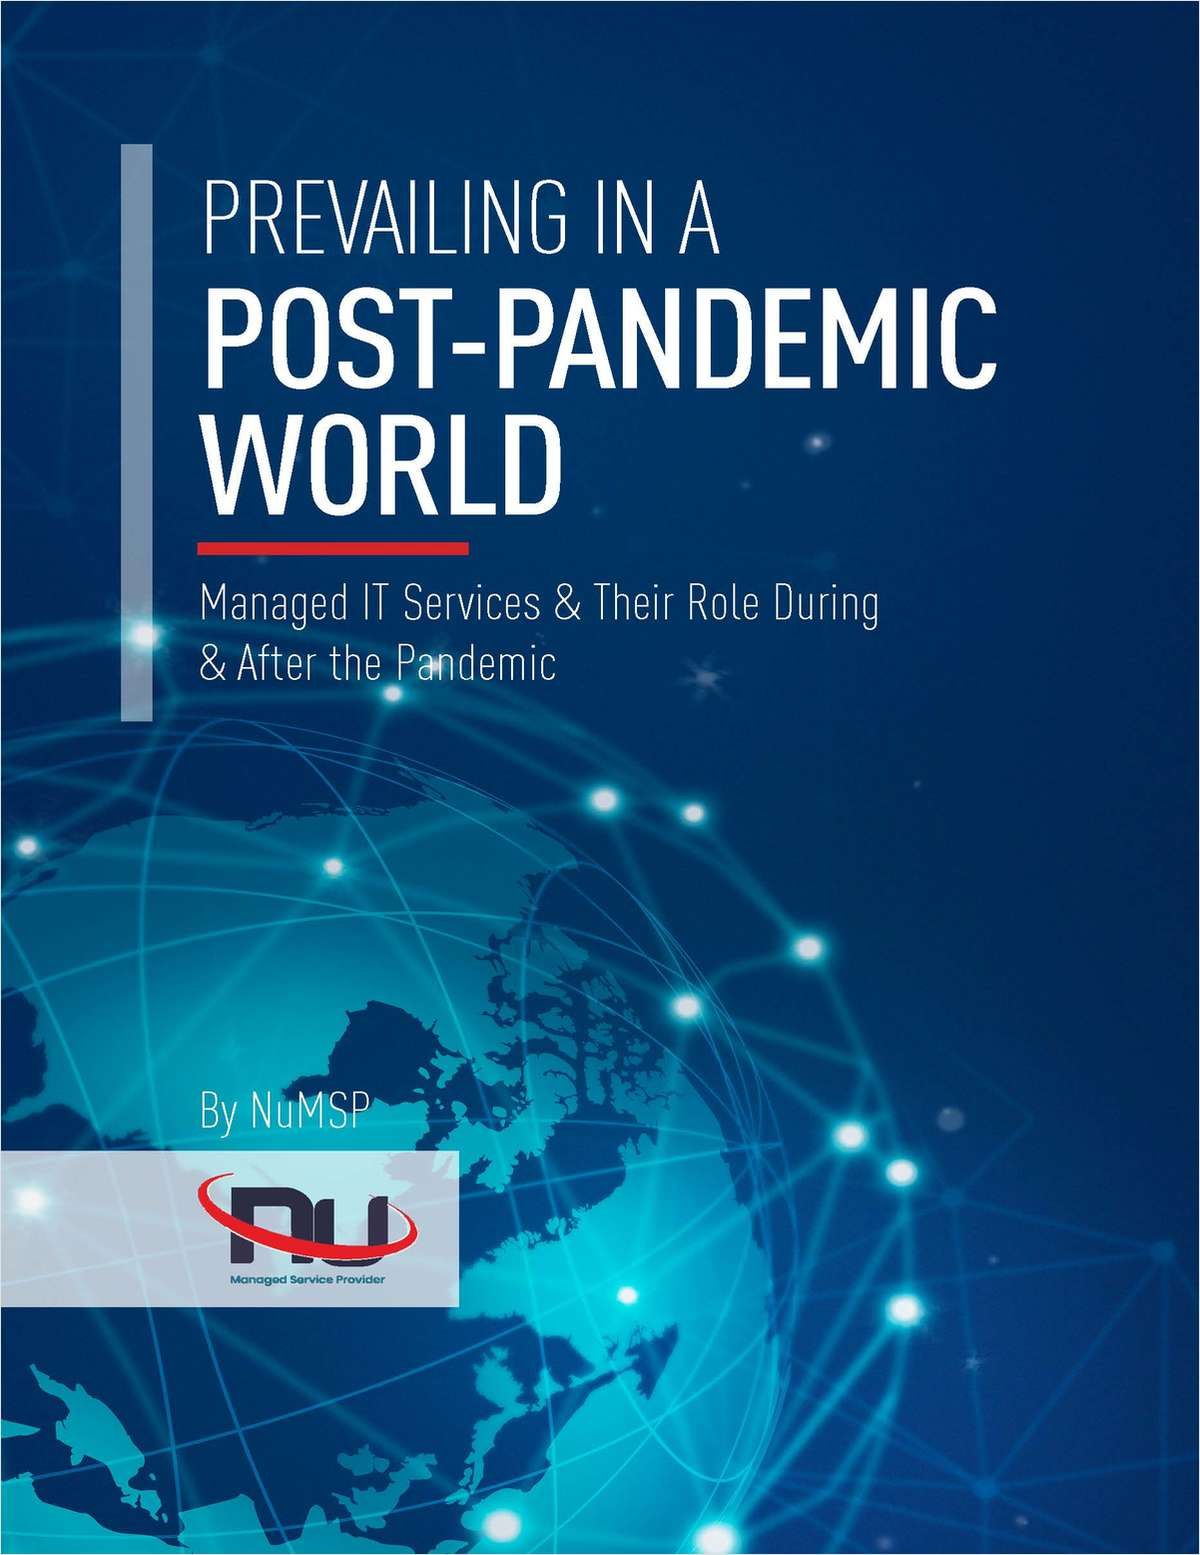 PREVAILING IN A POST-PANDEMIC WORLD